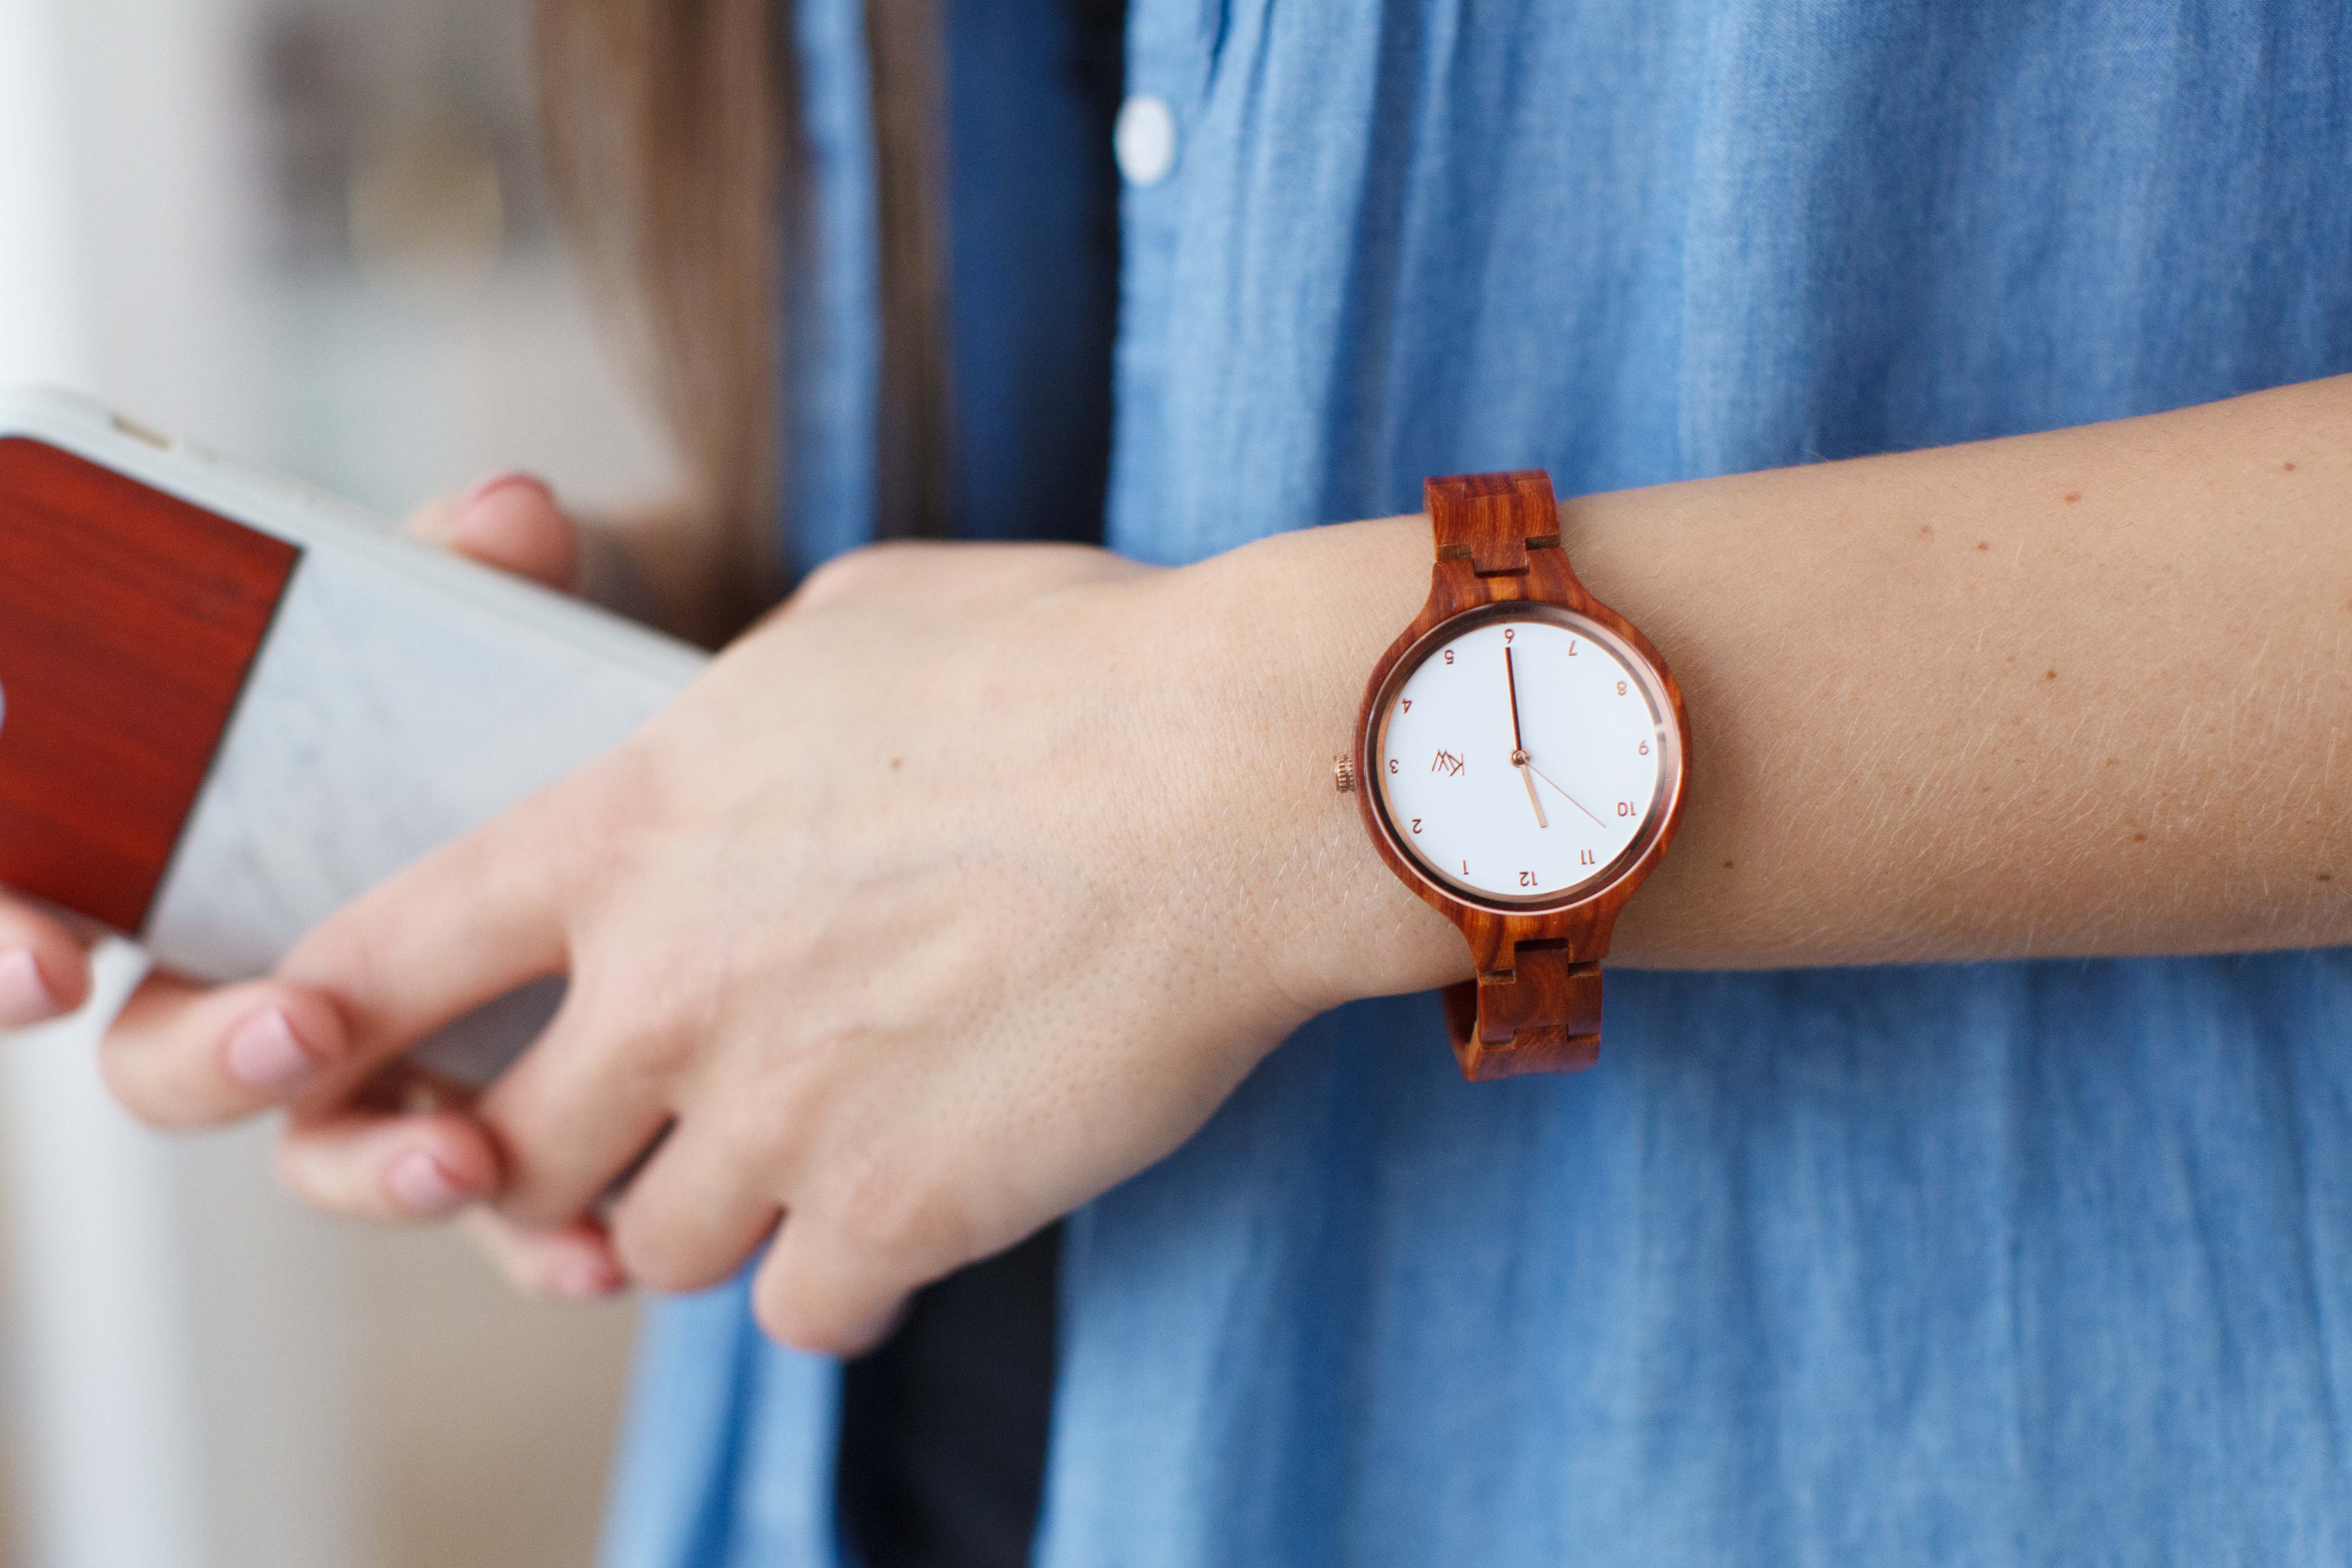 Buy Best Watches For Women Online At Snapdeal